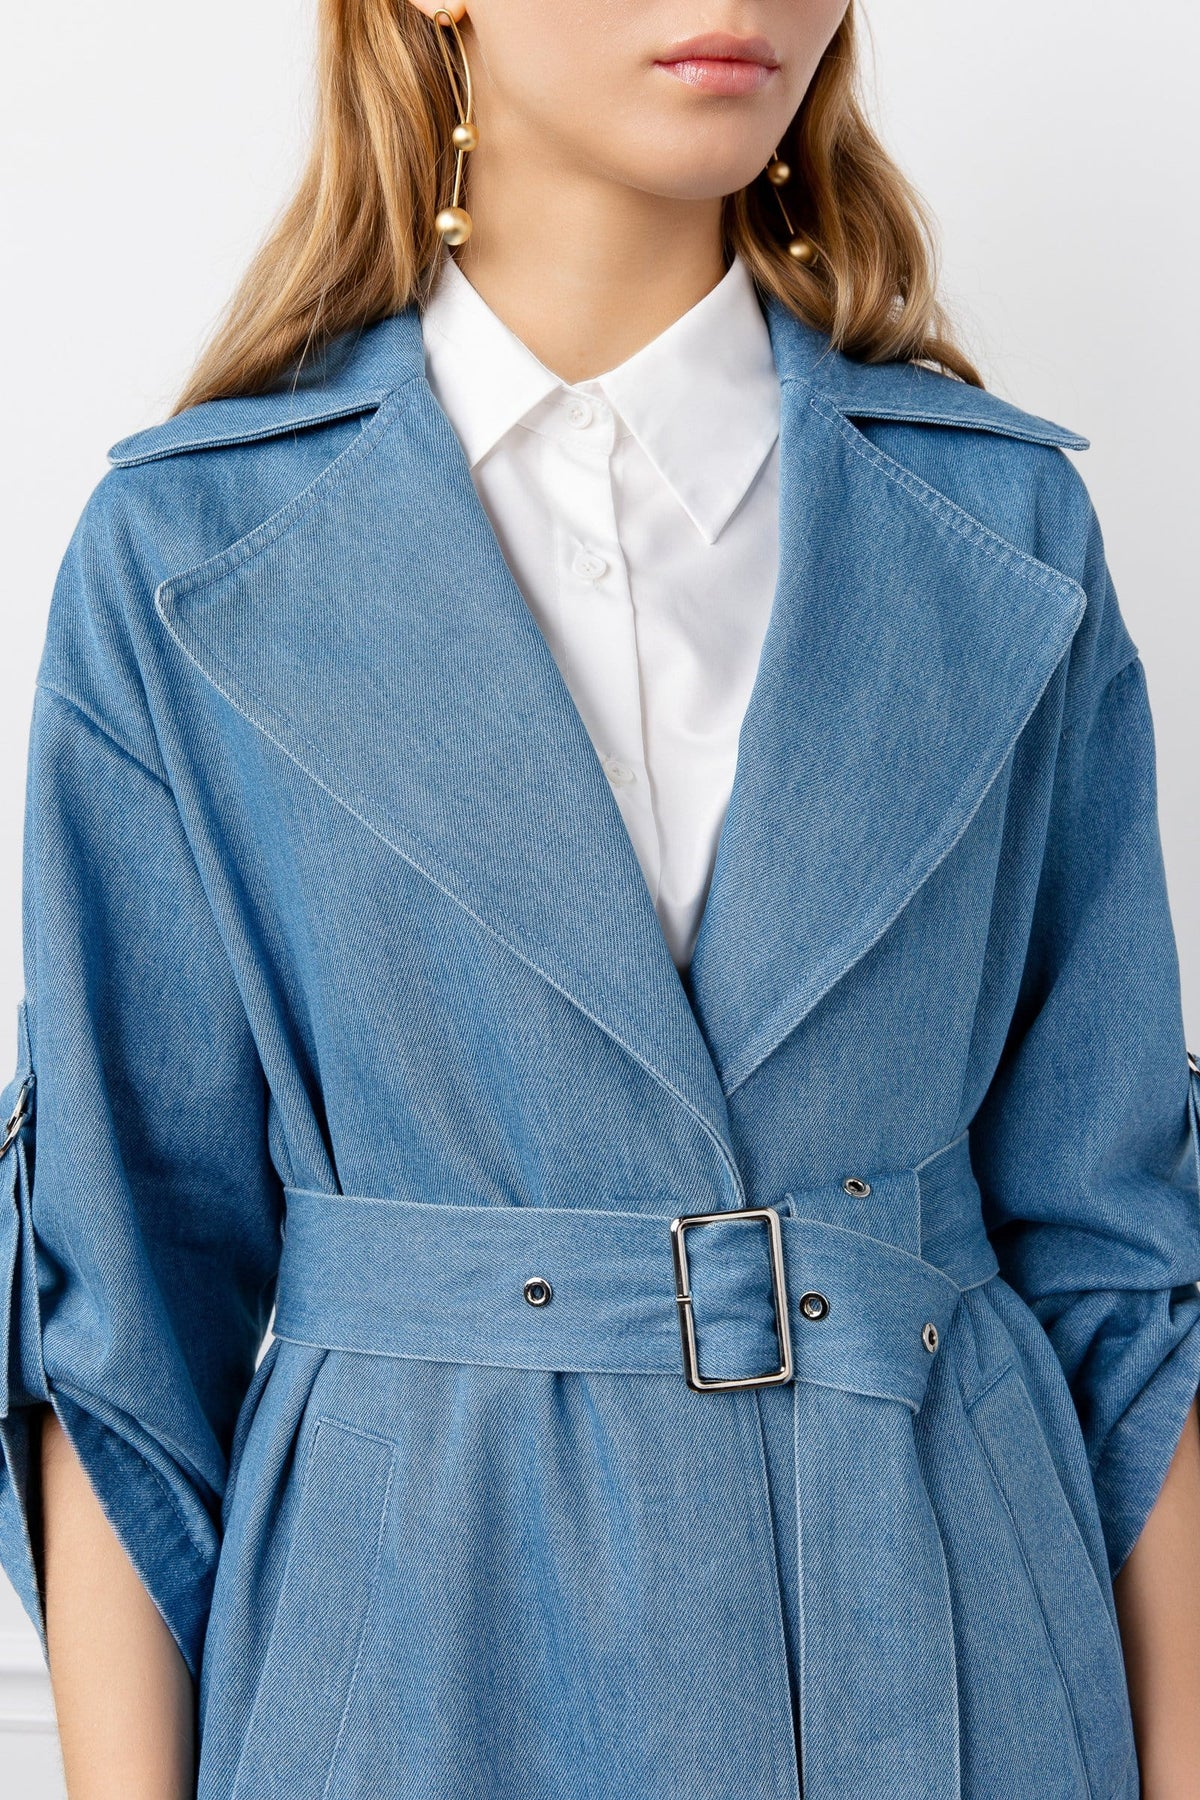 Nadine Blue Jean Trench Coat